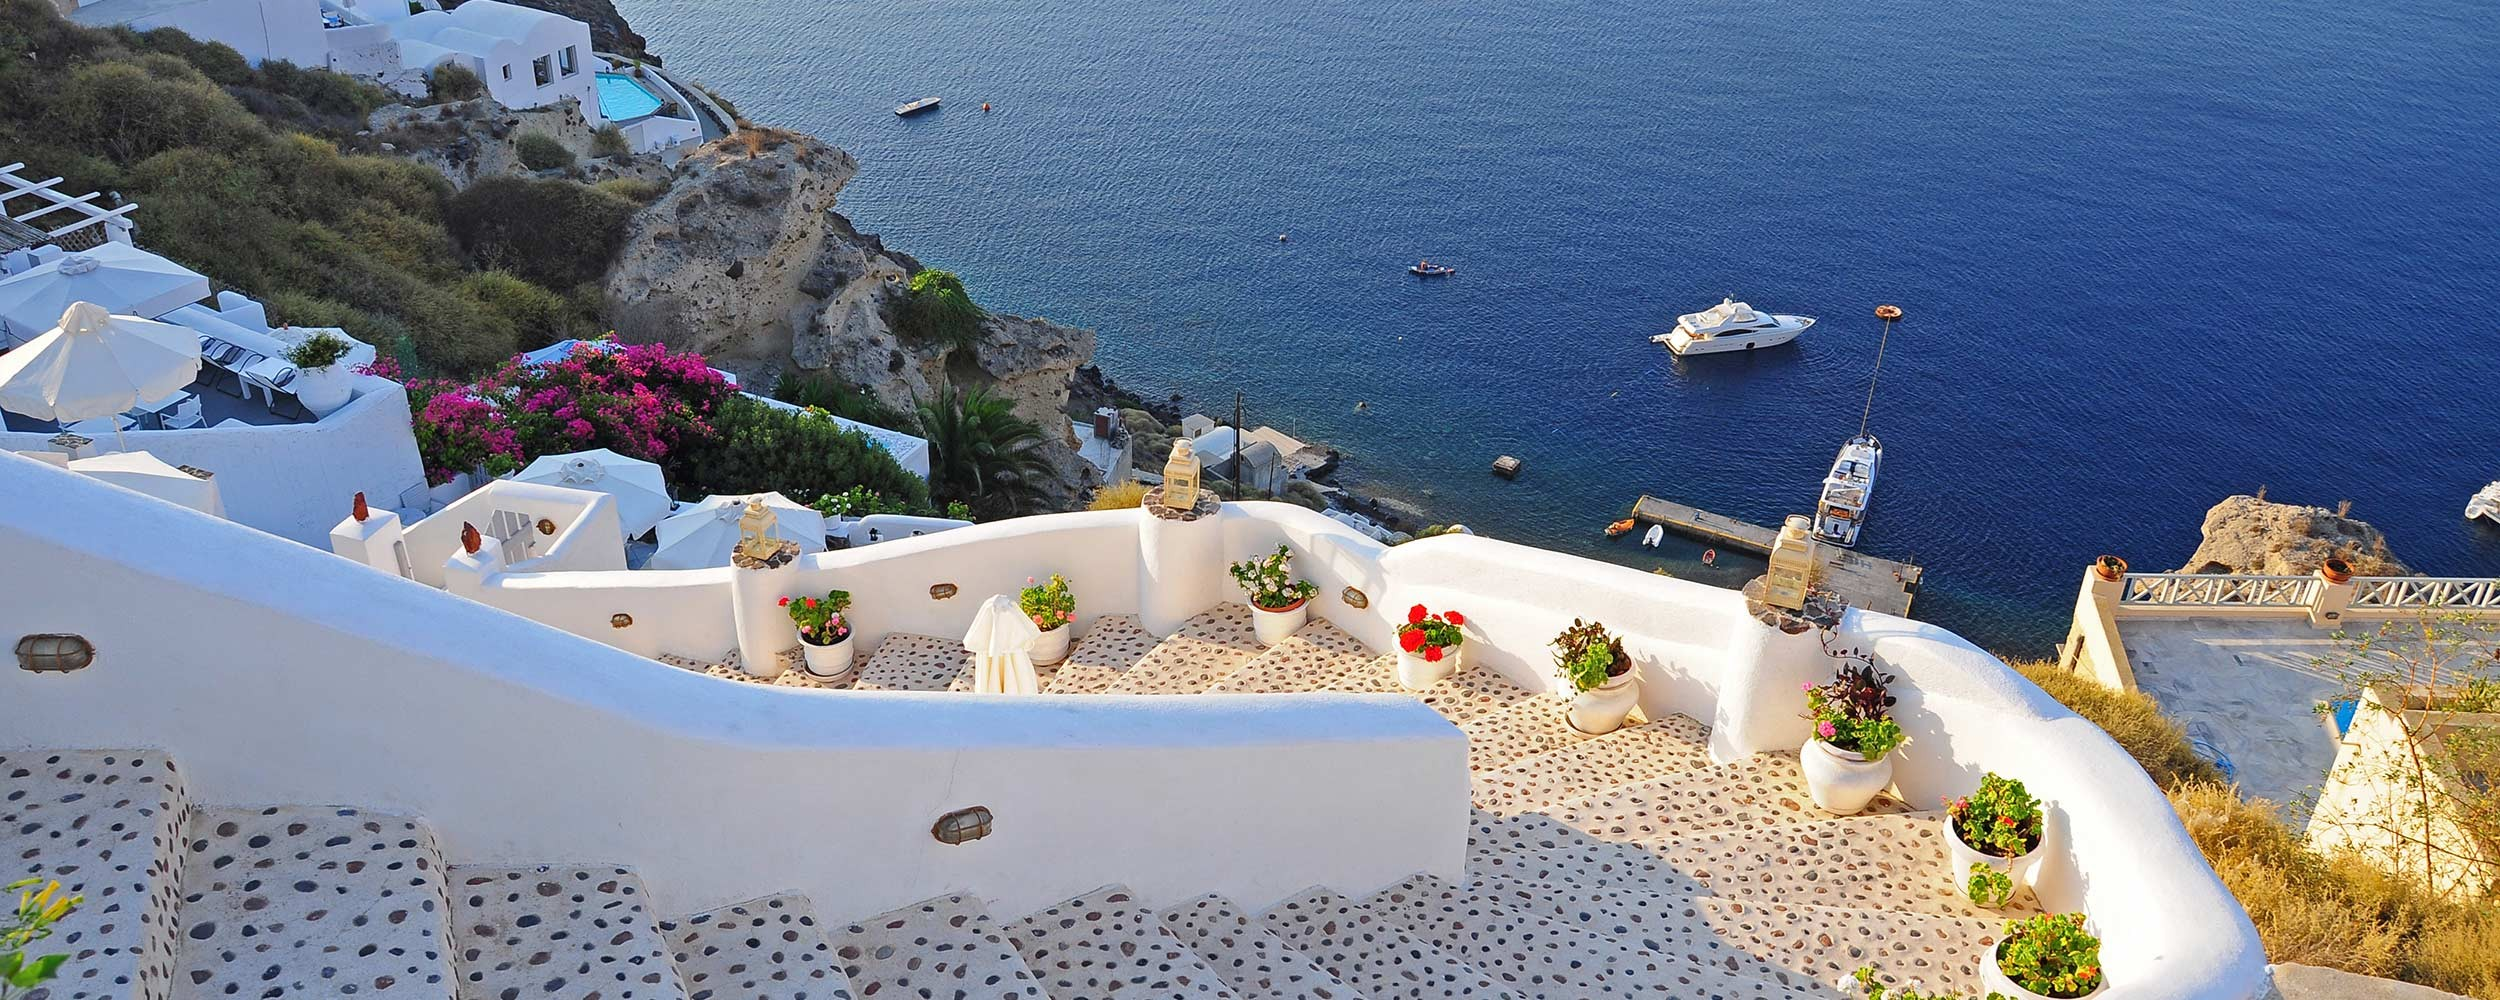 Voyages Iles Cyclades Santorin